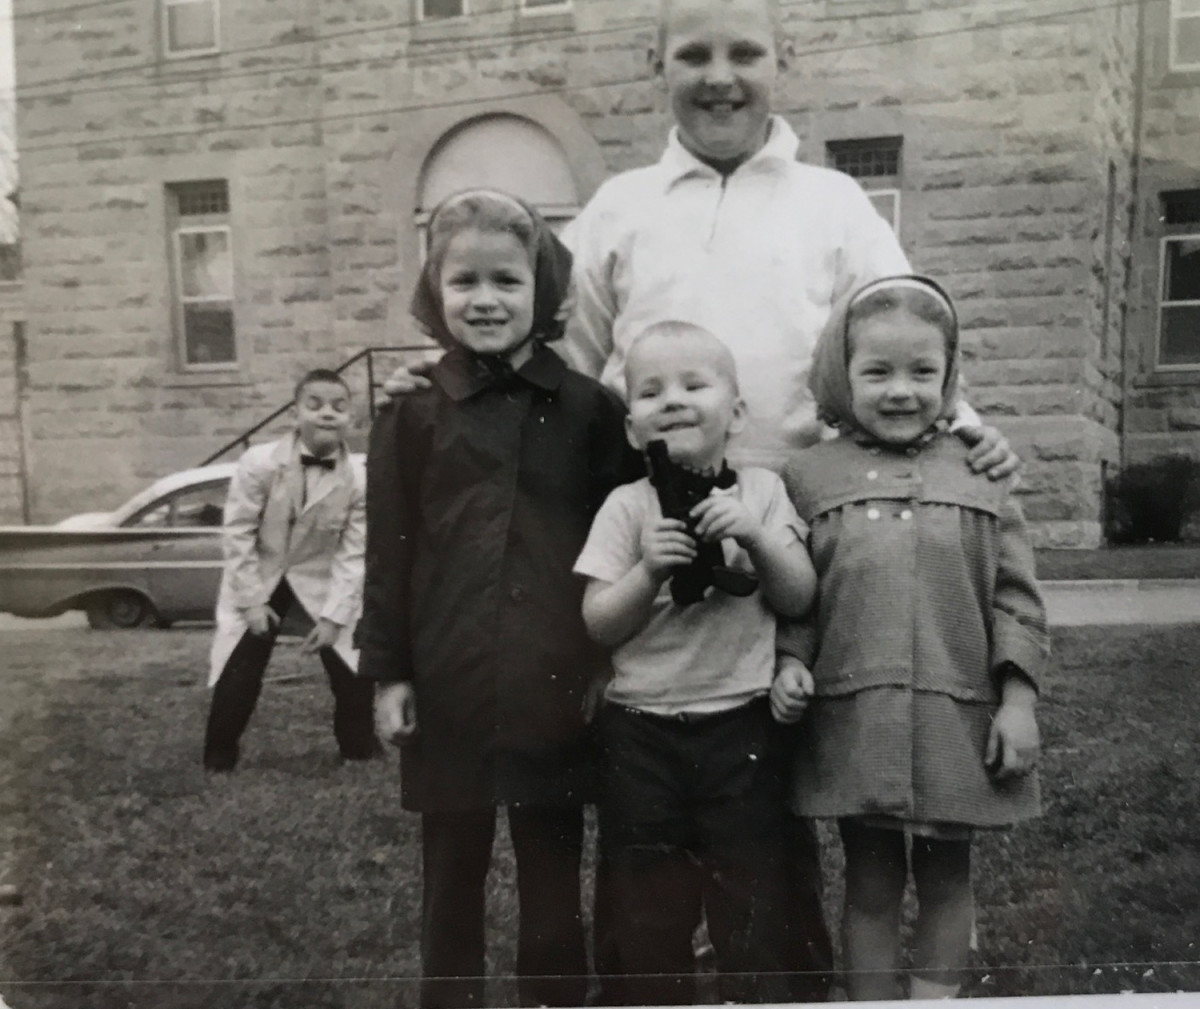 ca. 1966 photo of John Adams-Graf holding toy gun. Brothers Joe and Jim in the background.